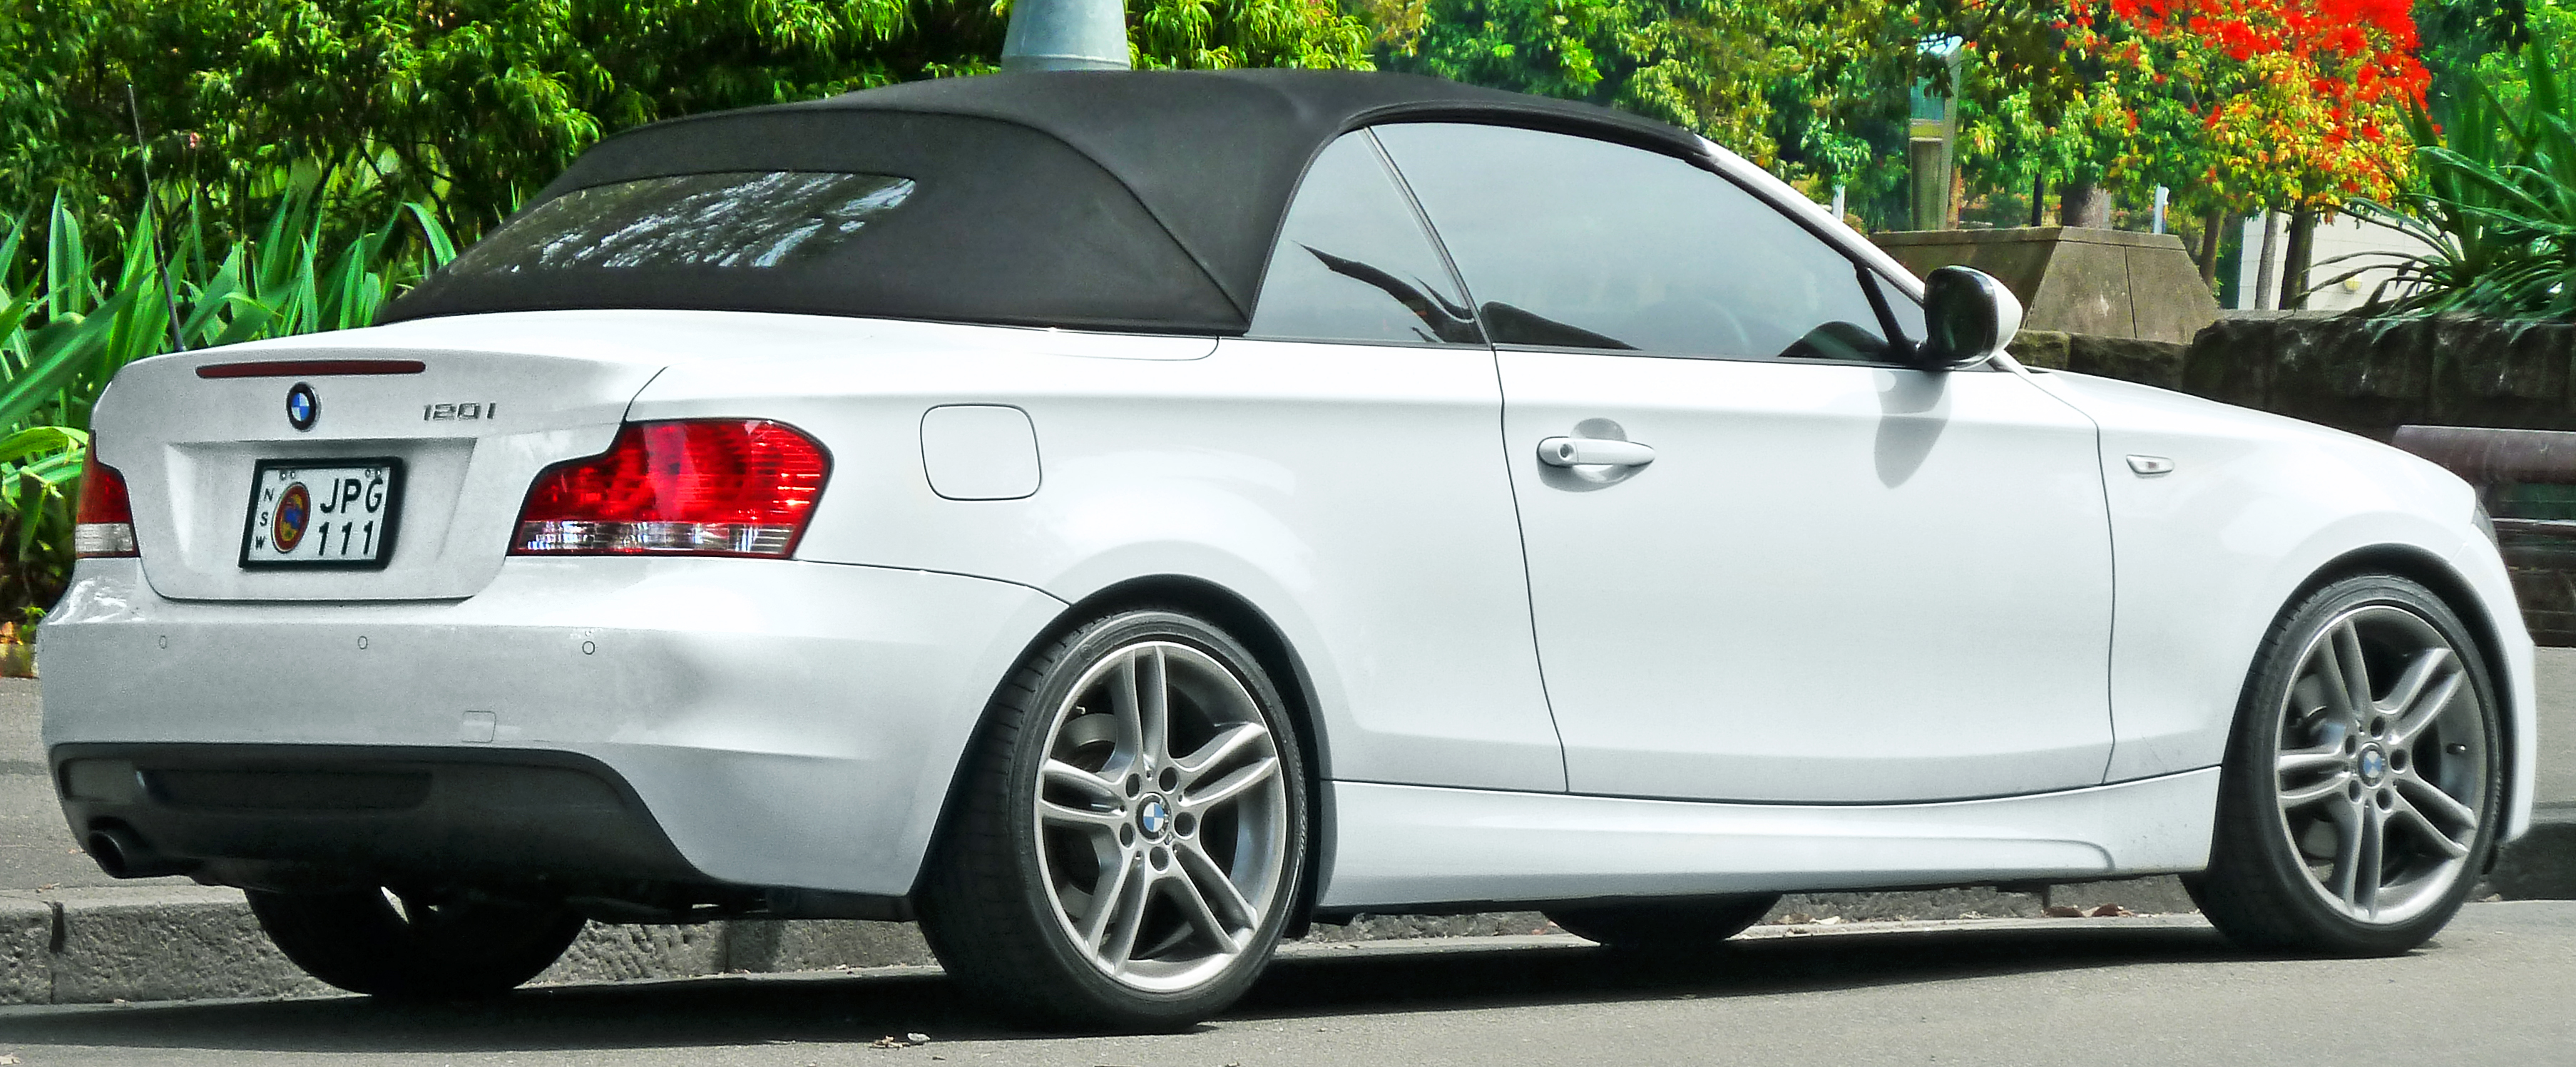 news carbuyer used front new convertible series tracking quarter revealed fully bmw